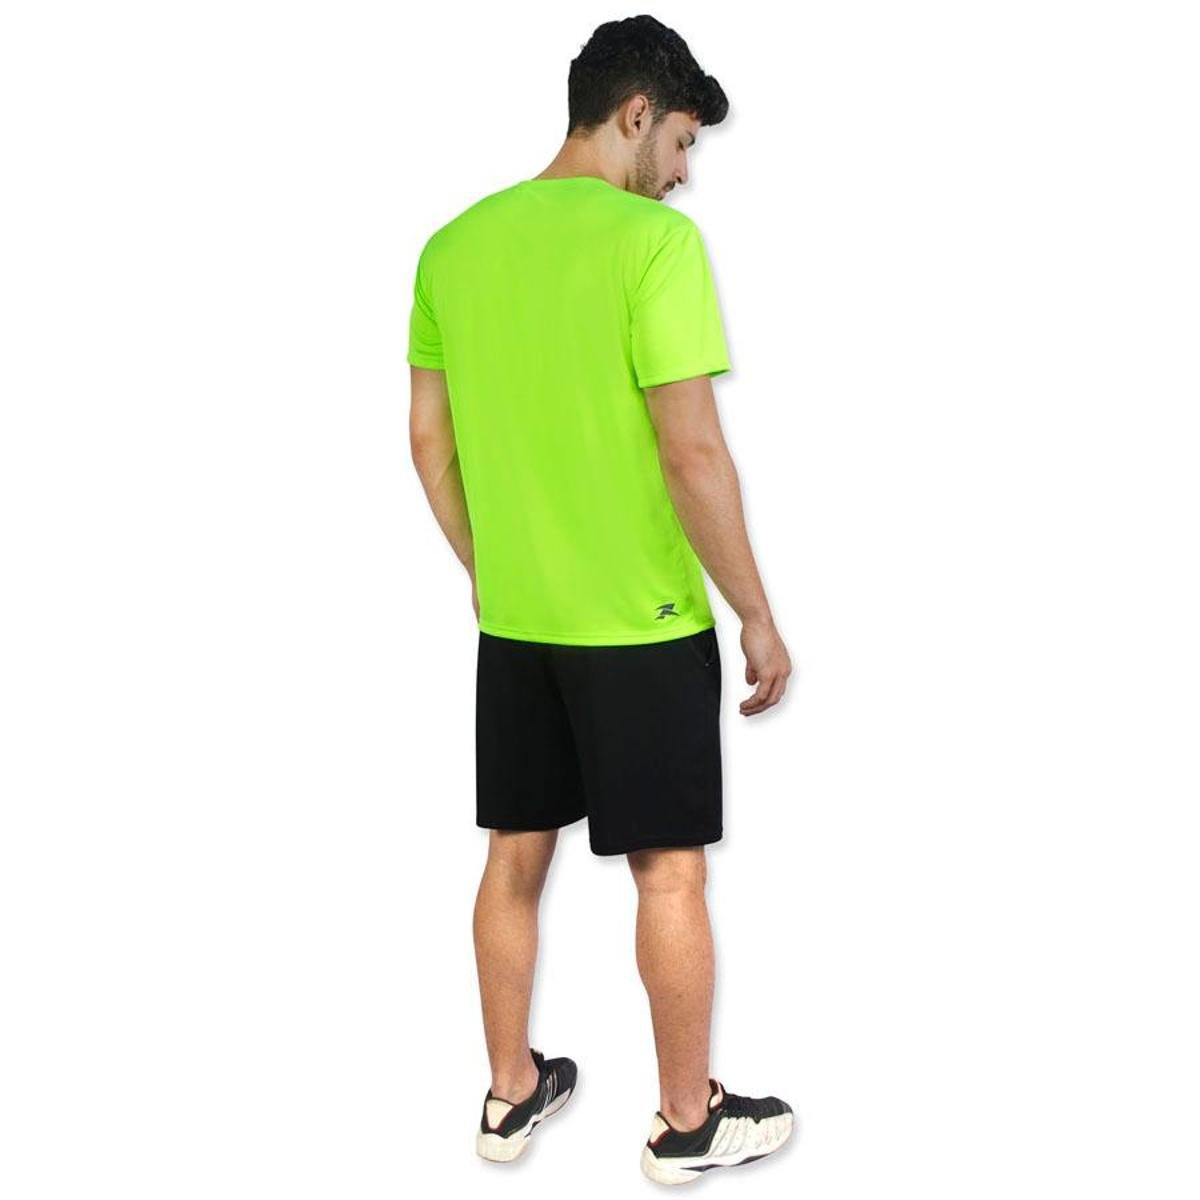 Color Muvin Verde Color Camiseta SS Workout Limão Dry Verde Limão Camiseta Dry Workout SS Muvin q8S7fOW